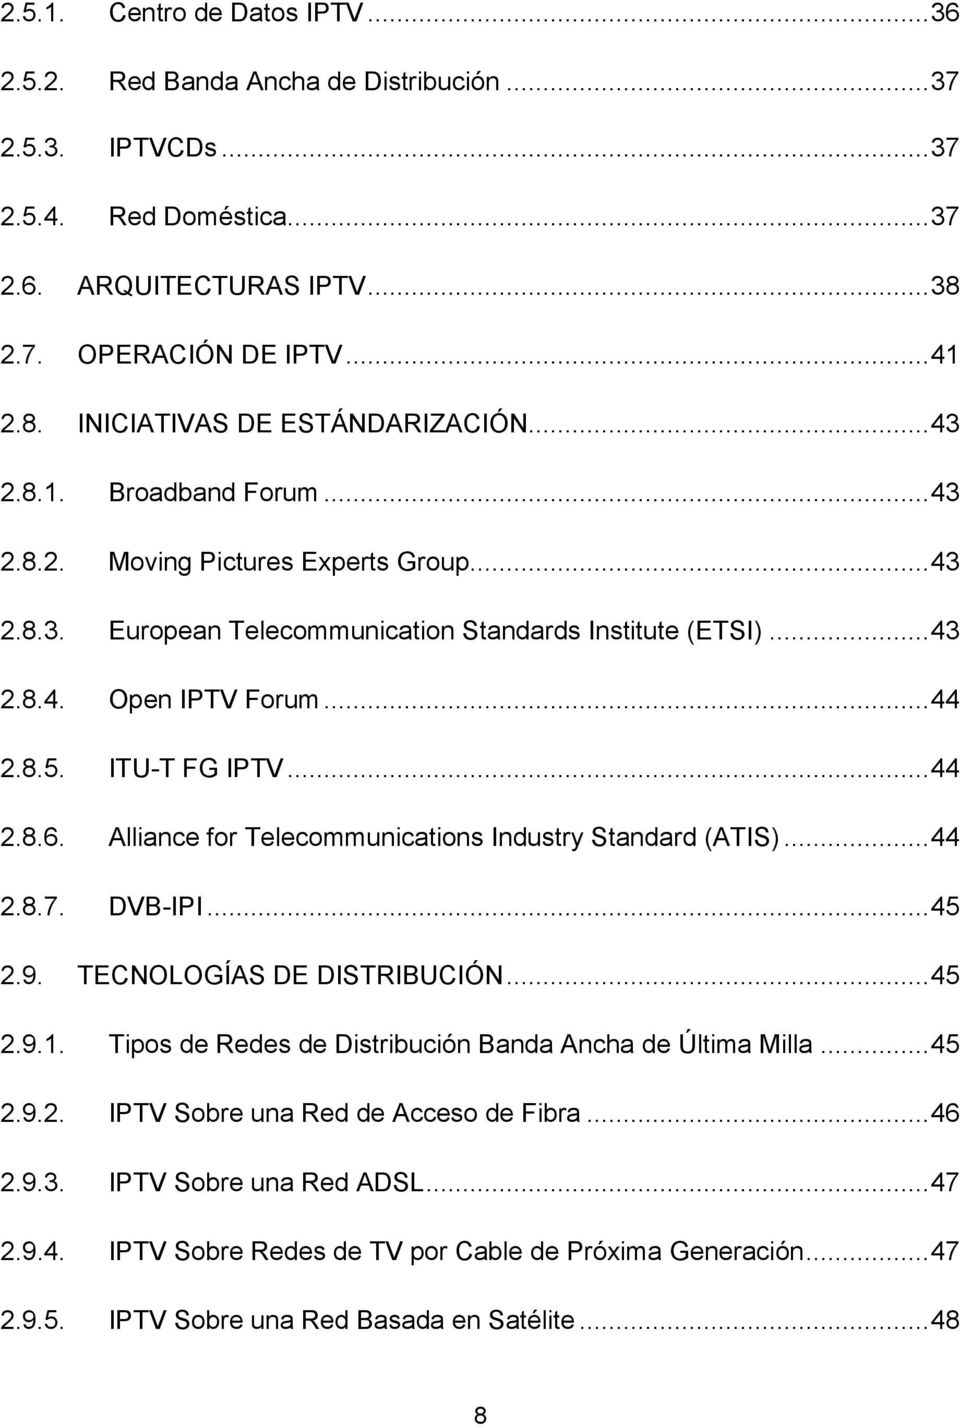 .. 44 2.8.6. Alliance for Telecommunications Industry Standard (ATIS)... 44 2.8.7. DVB-IPI... 45 2.9. TECNOLOGÍAS DE DISTRIBUCIÓN... 45 2.9.1.